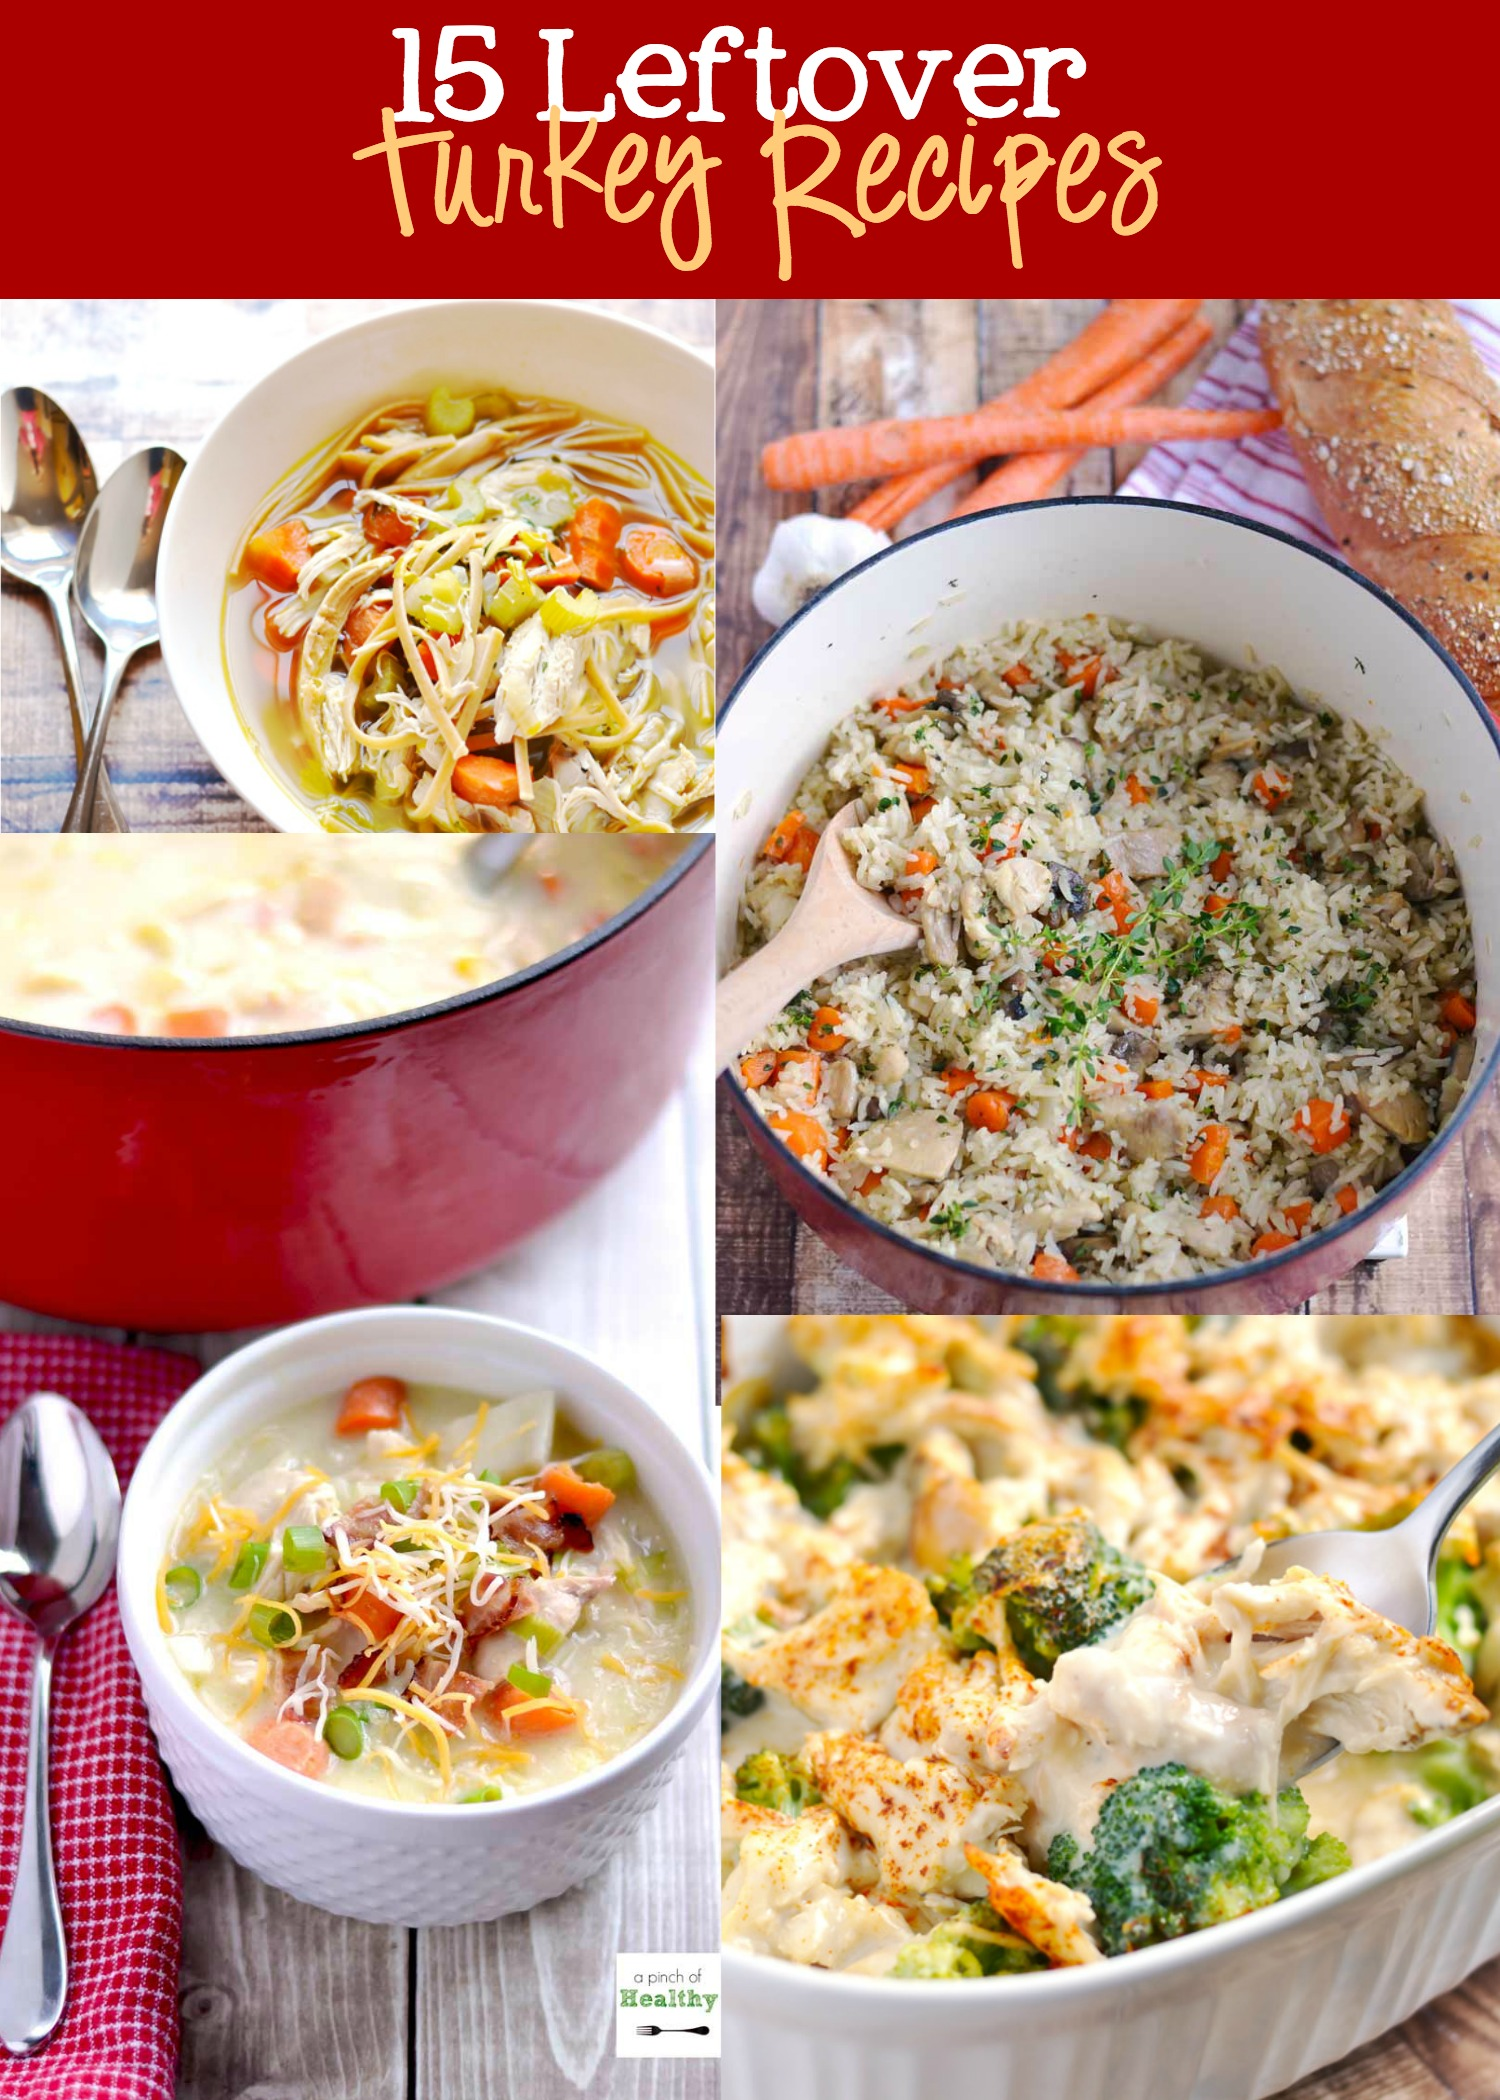 15 Leftover Turkey Recipes - 15 awesomely delicious ways to use up all that leftover turkey!   APinchOfHealthy.com